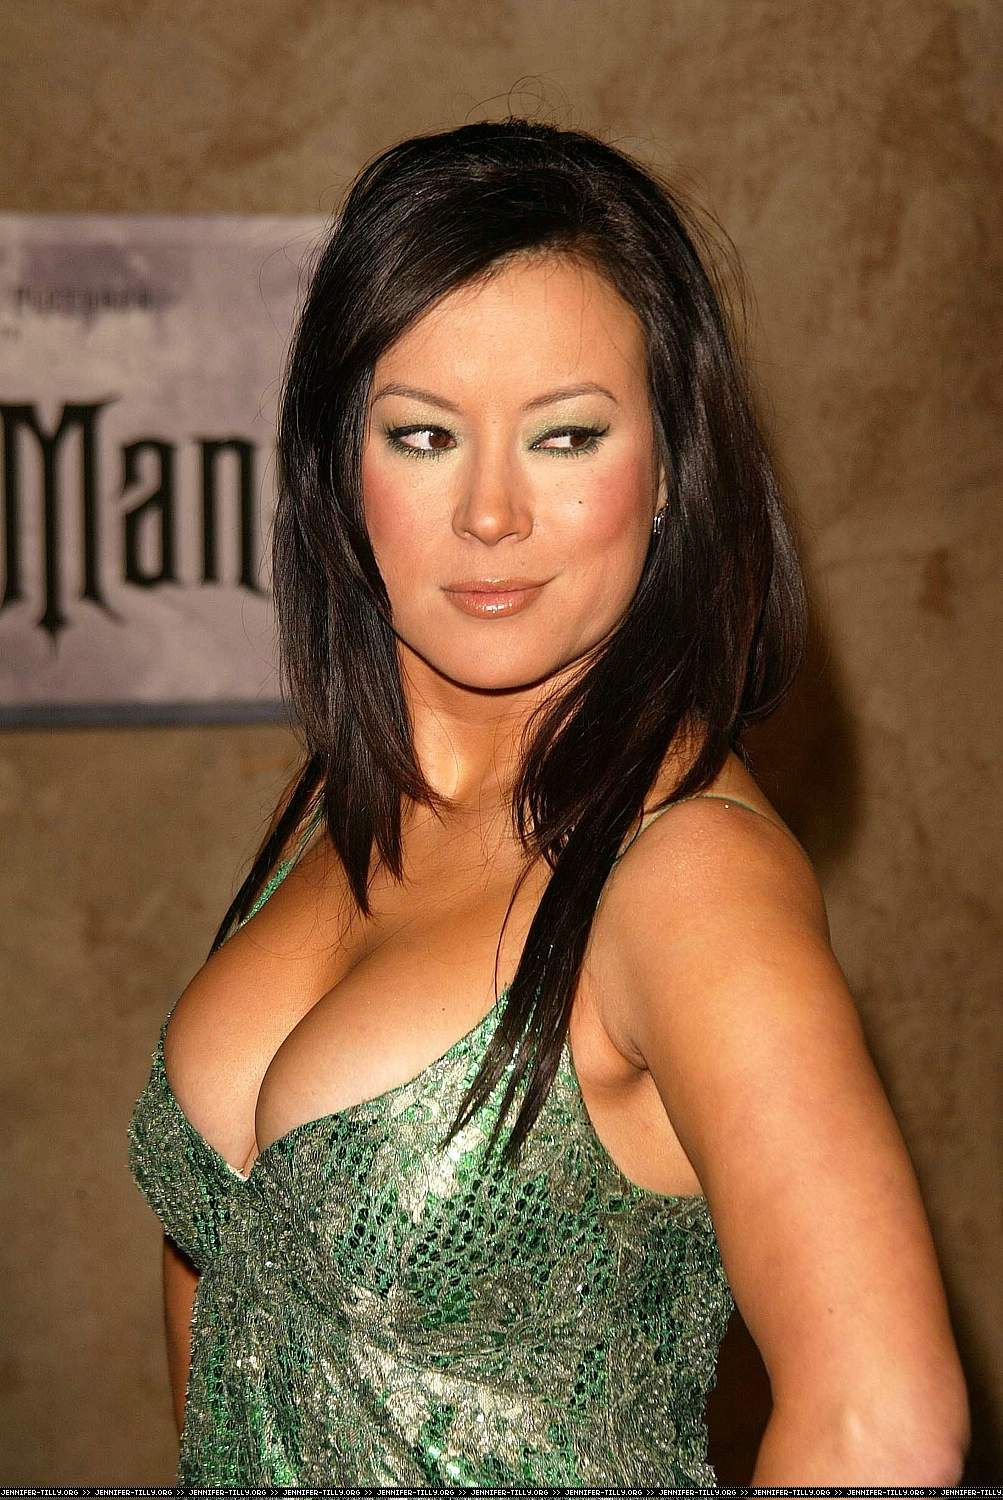 thru Nude jennifer tilly see